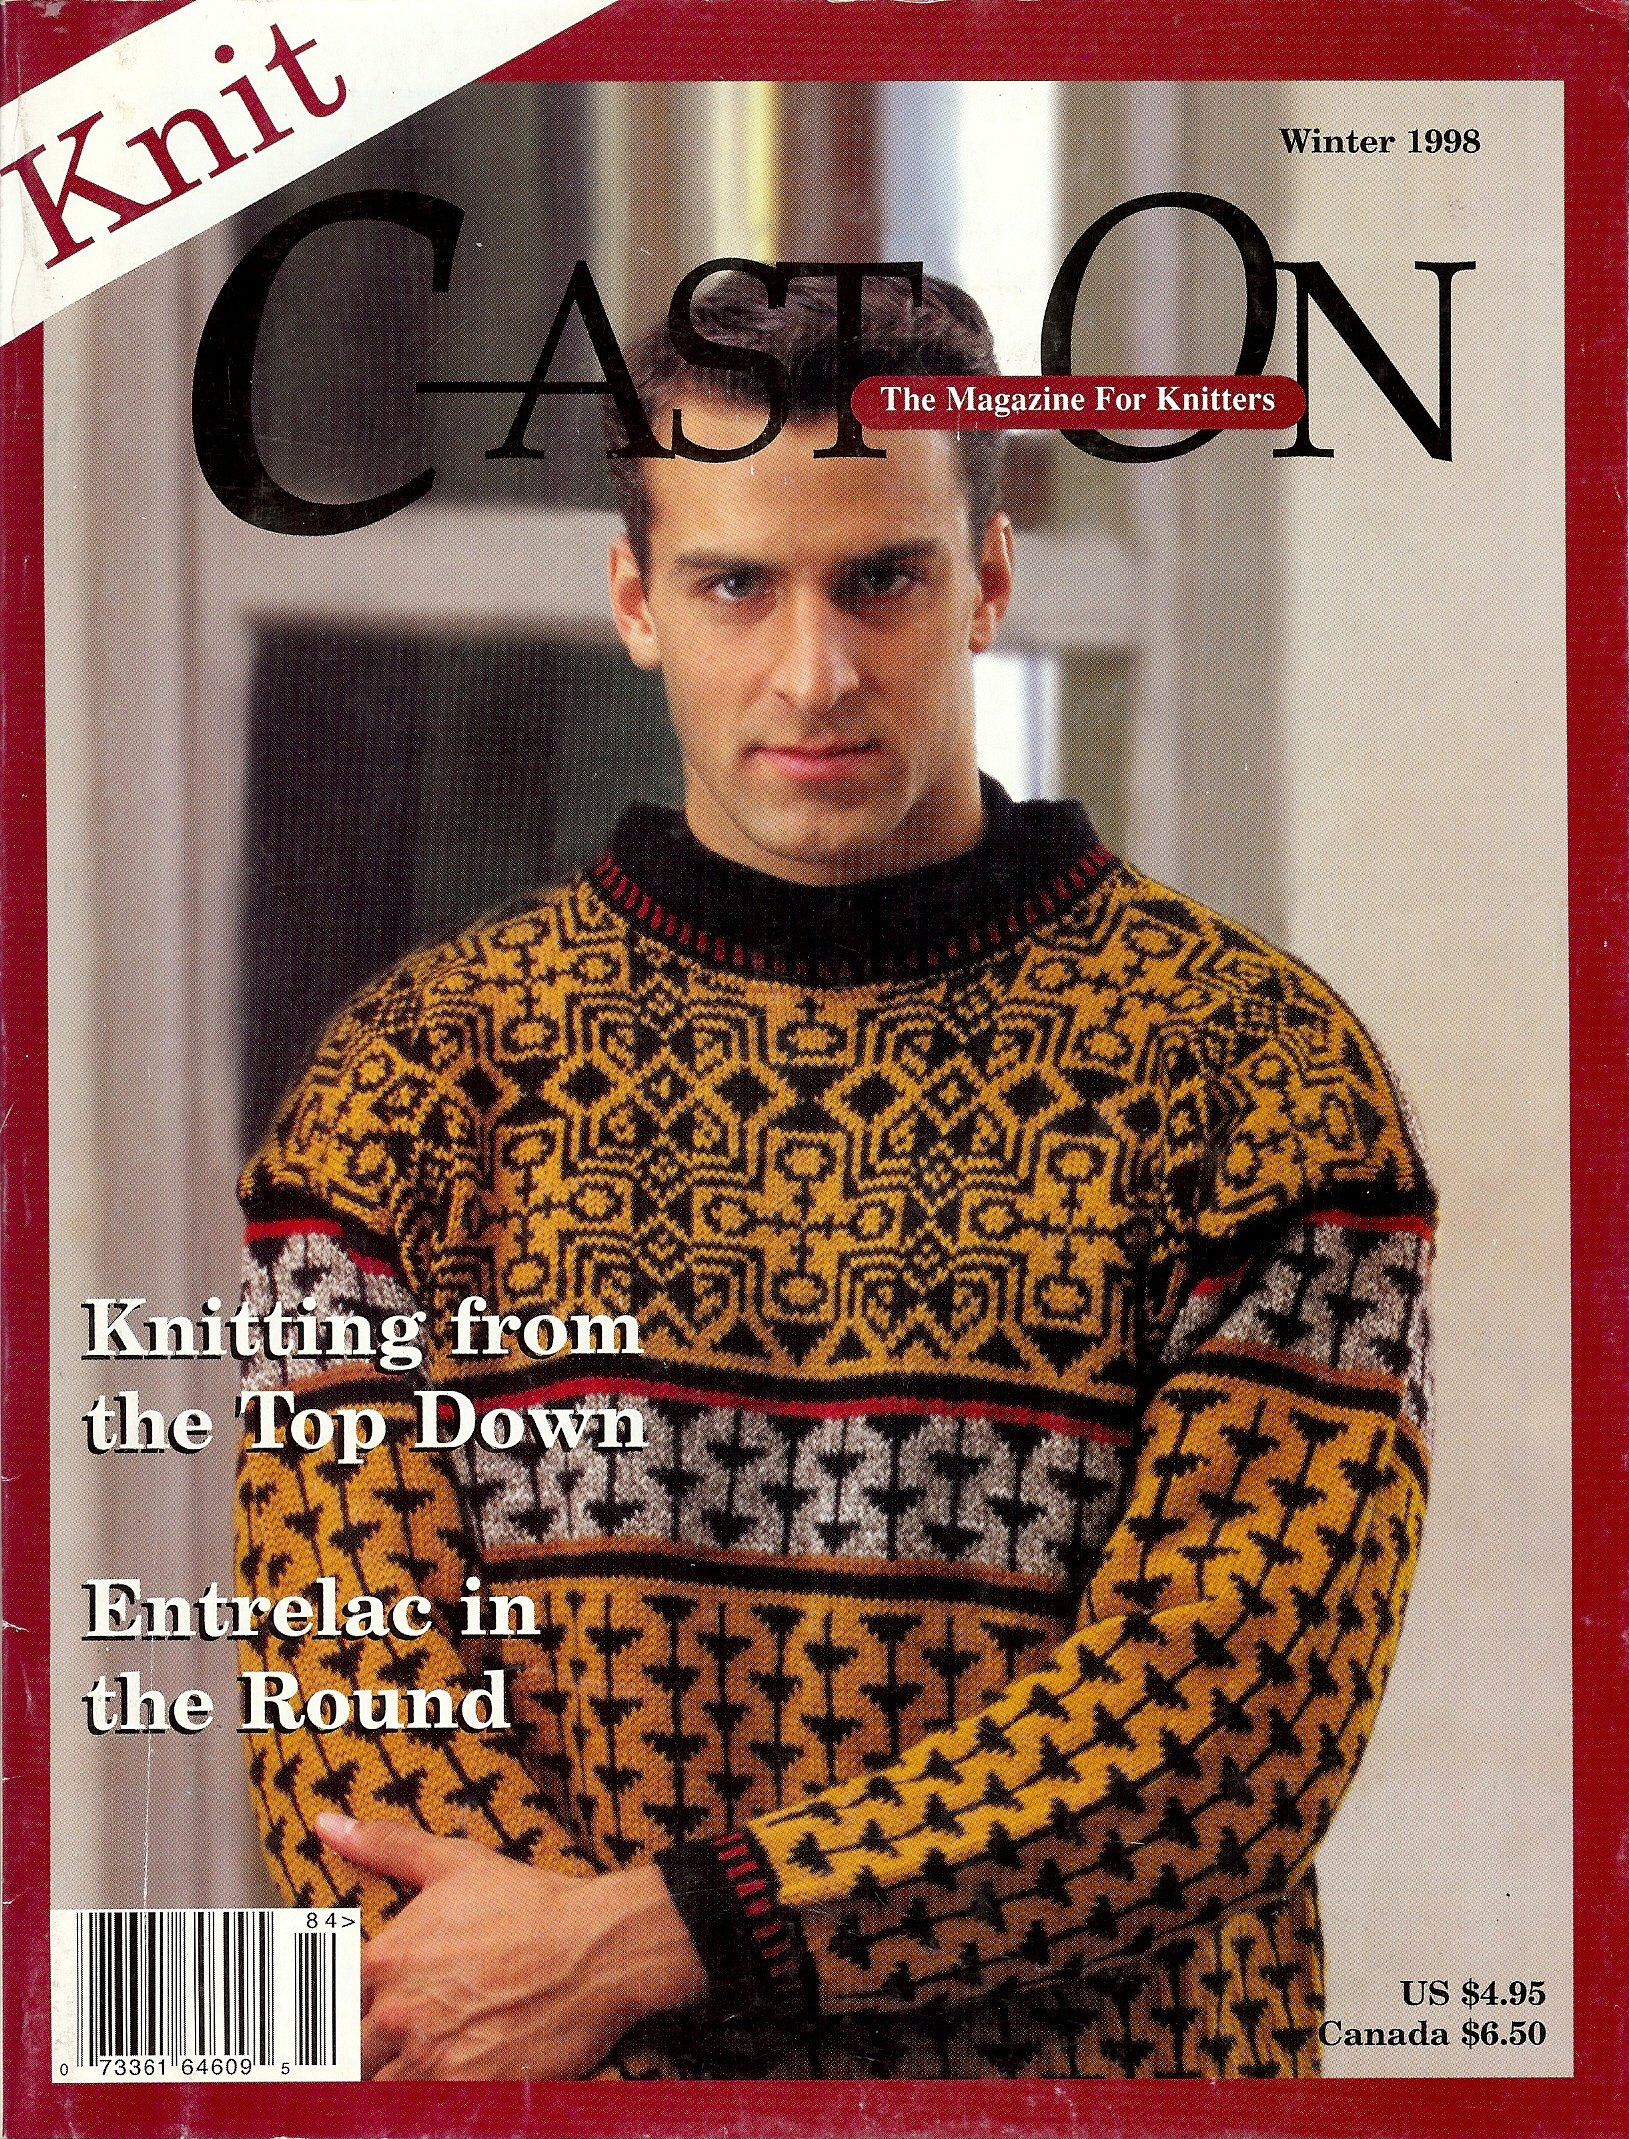 Download Cast On The Magazine for Knitters (Knitting from the Top Down) pdf